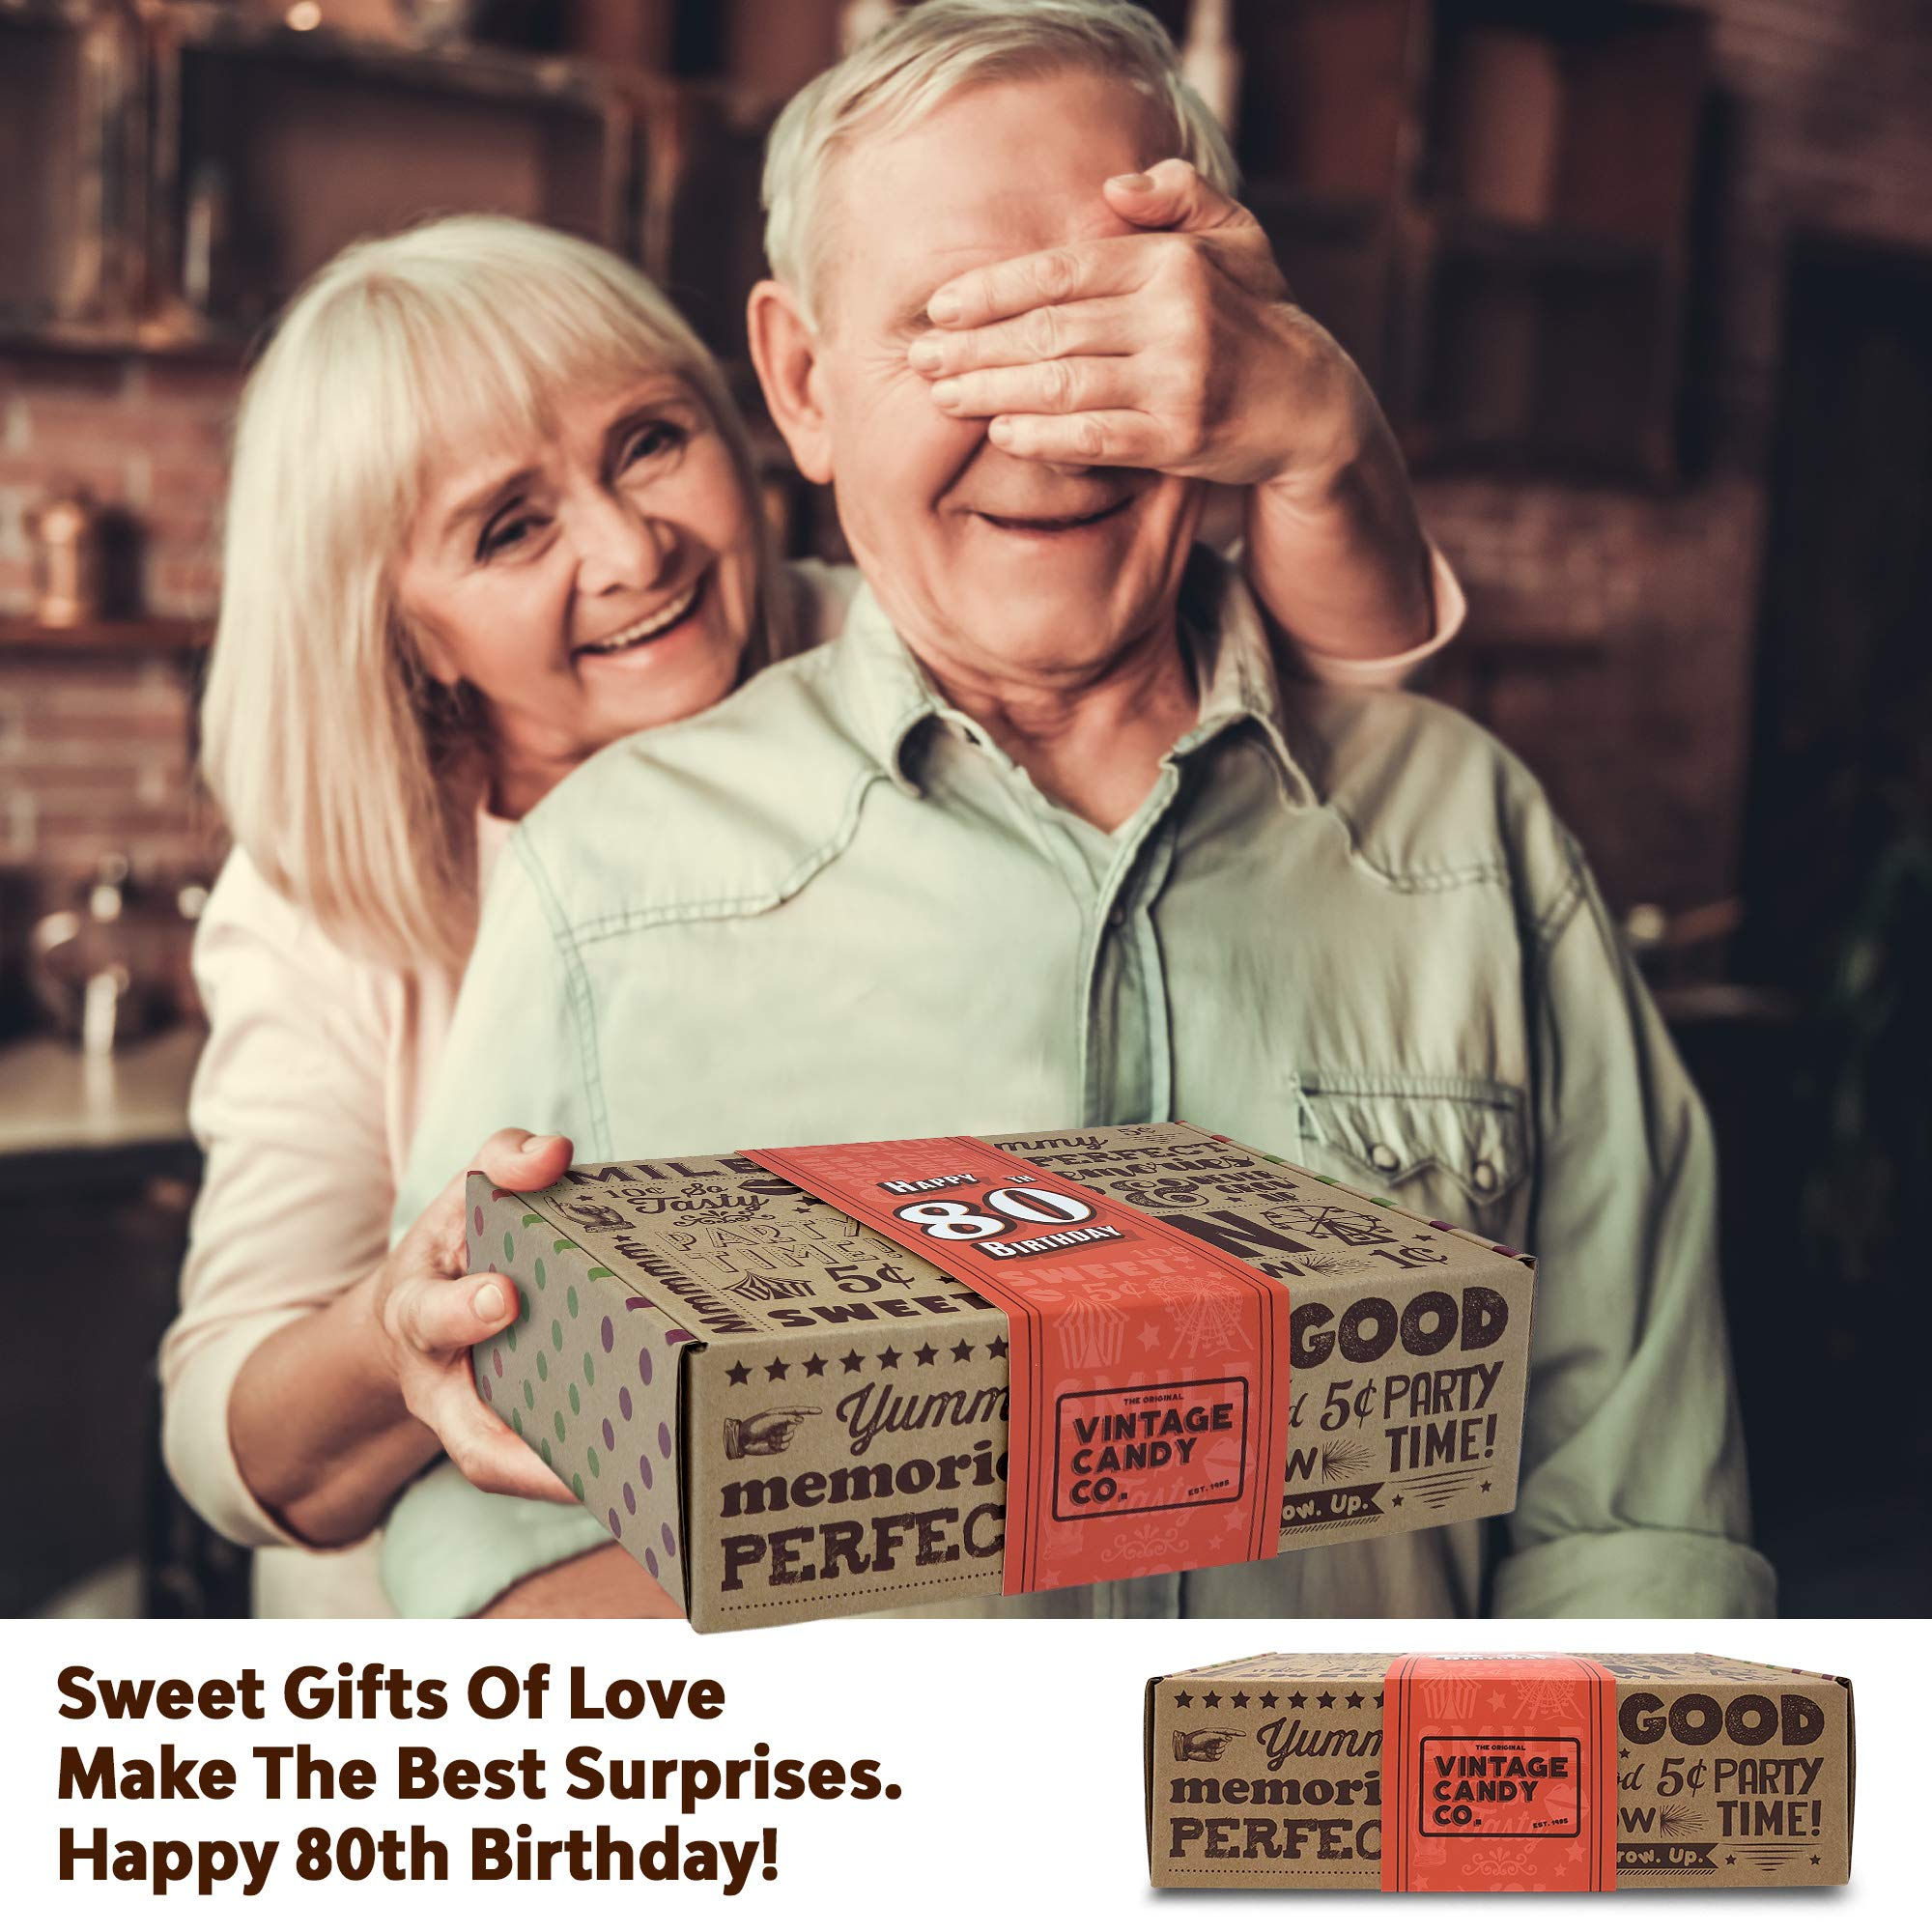 VINTAGE CANDY CO. 80TH BIRTHDAY RETRO CANDY GIFT BOX - 1939 Decade Nostalgic Childhood Candies - Fun Gag Gift Basket for Milestone EIGHTIETH Birthday - PERFECT For Man Or Woman Turning 80 Years Old by Vintage Candy Co. (Image #6)